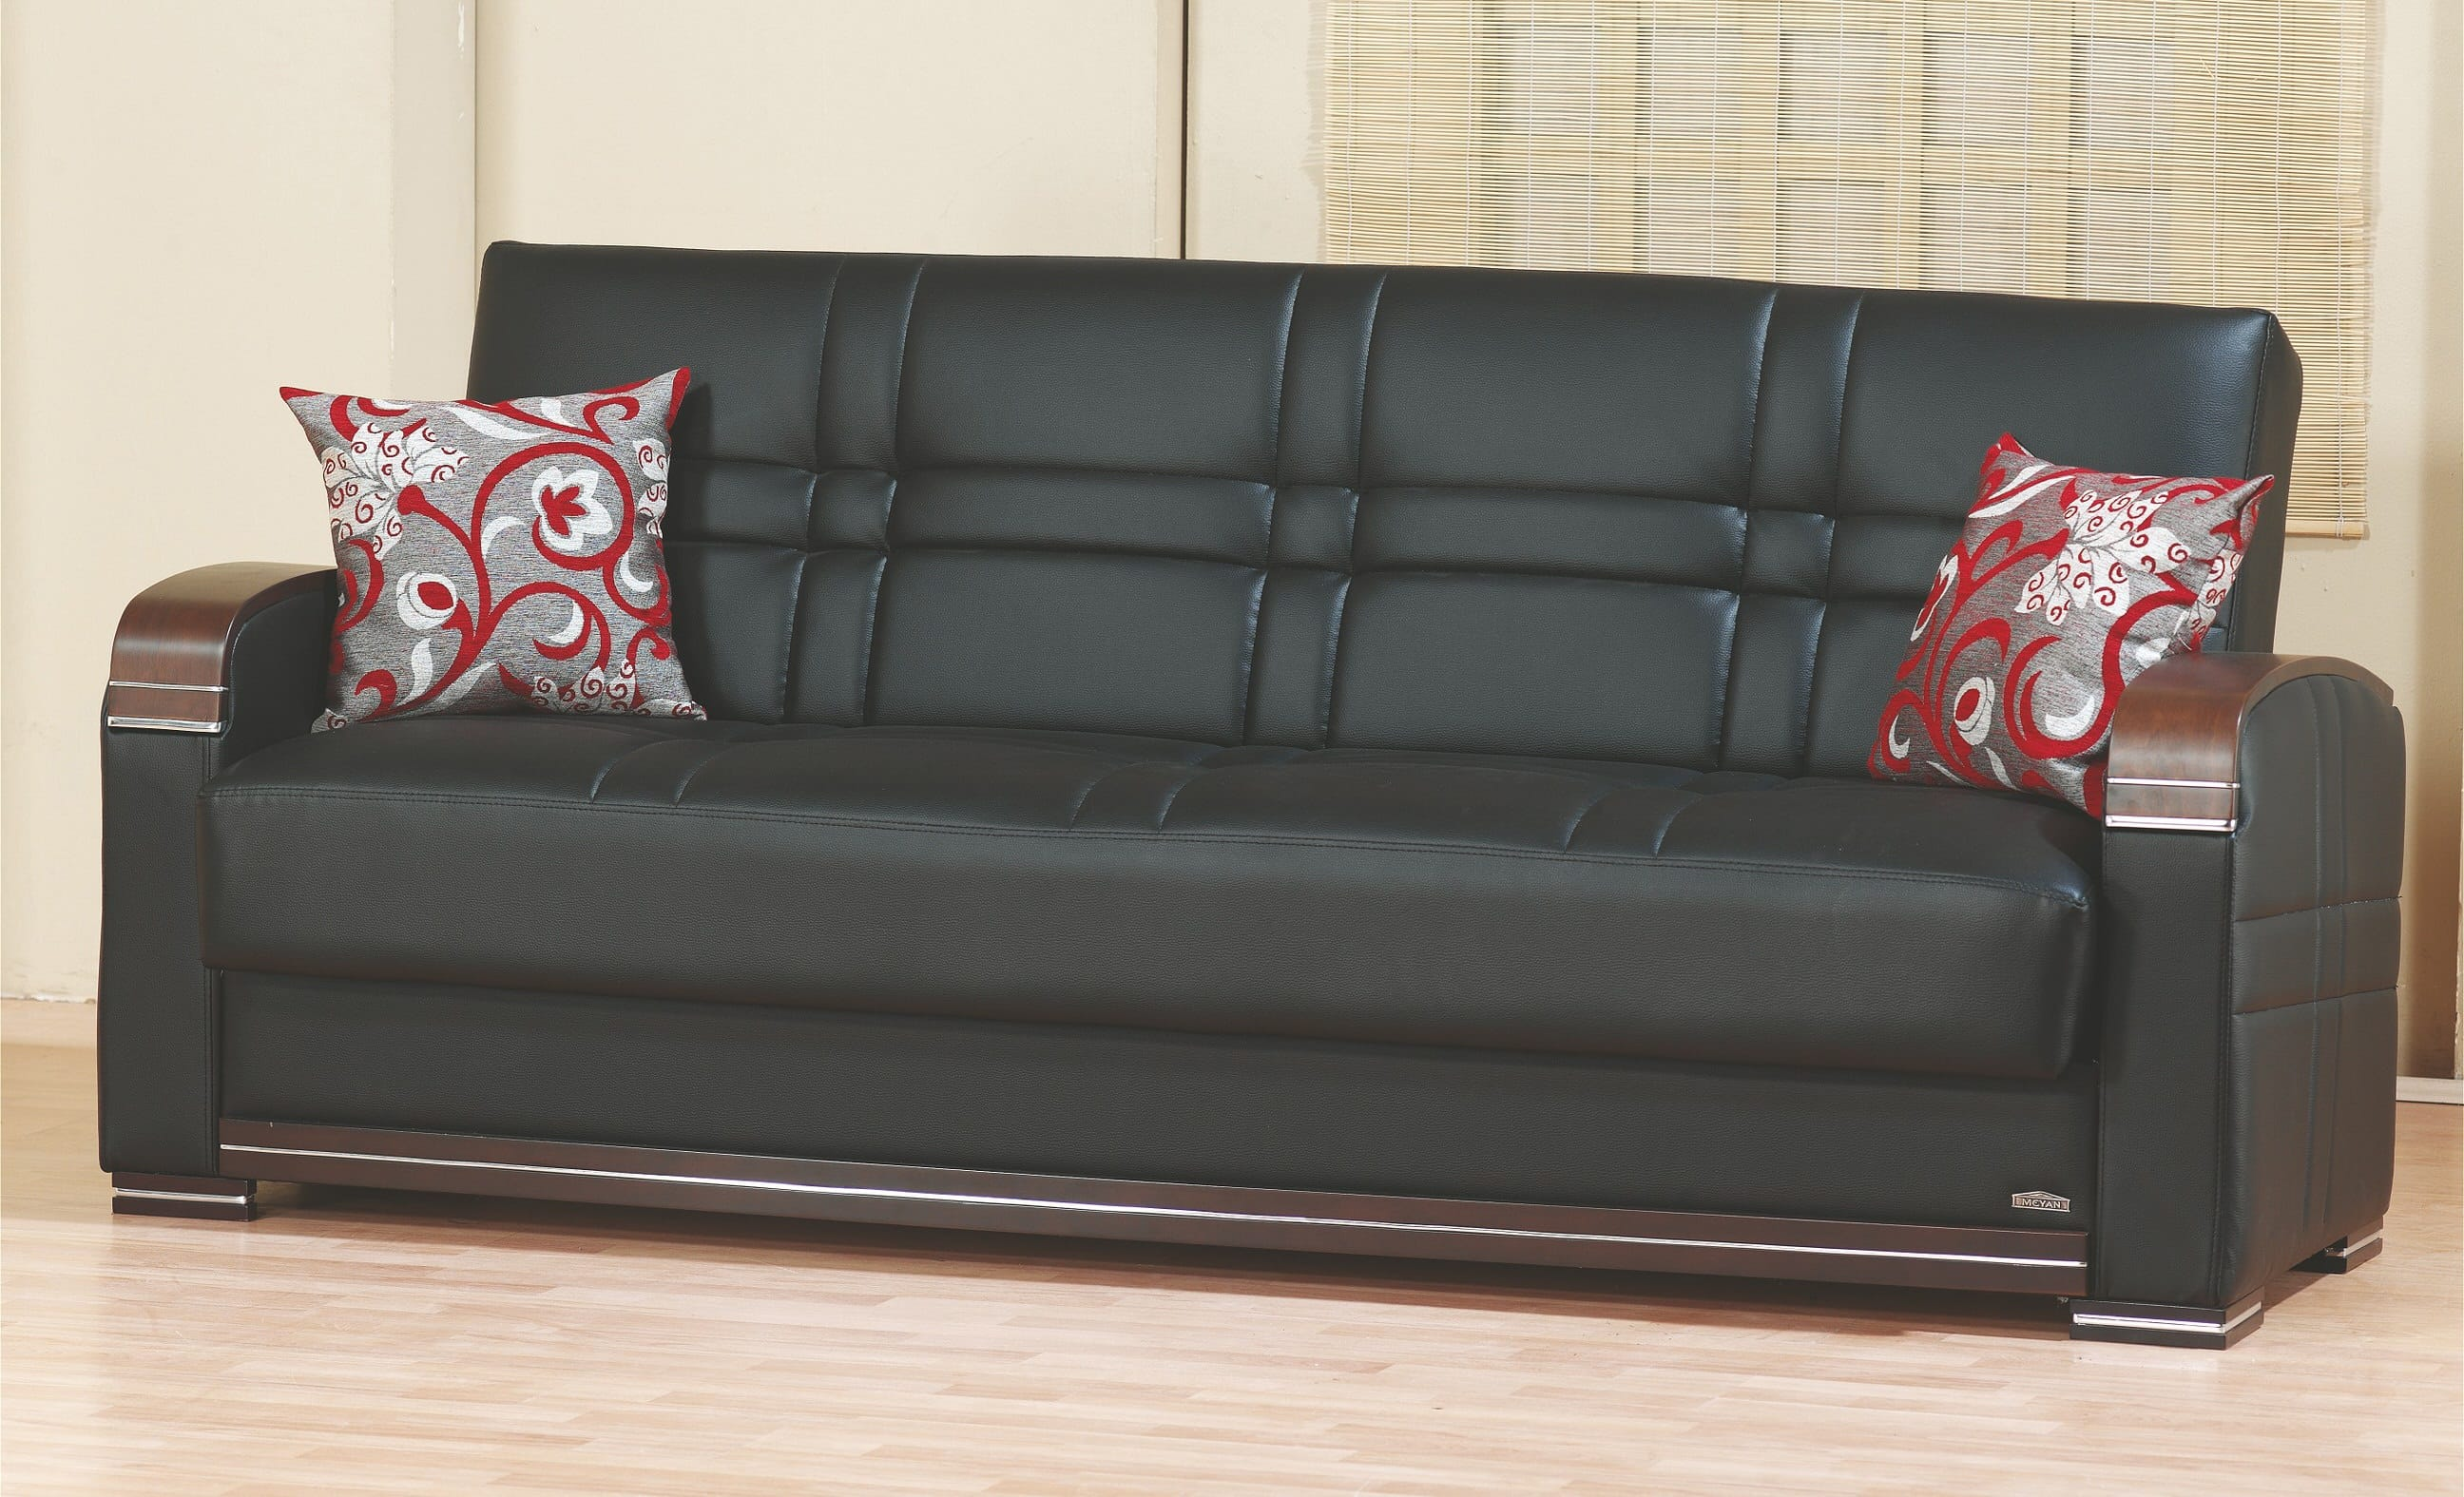 Tremendous Bronx Black Leather Sofa Bed By Empire Furniture Usa Ocoug Best Dining Table And Chair Ideas Images Ocougorg